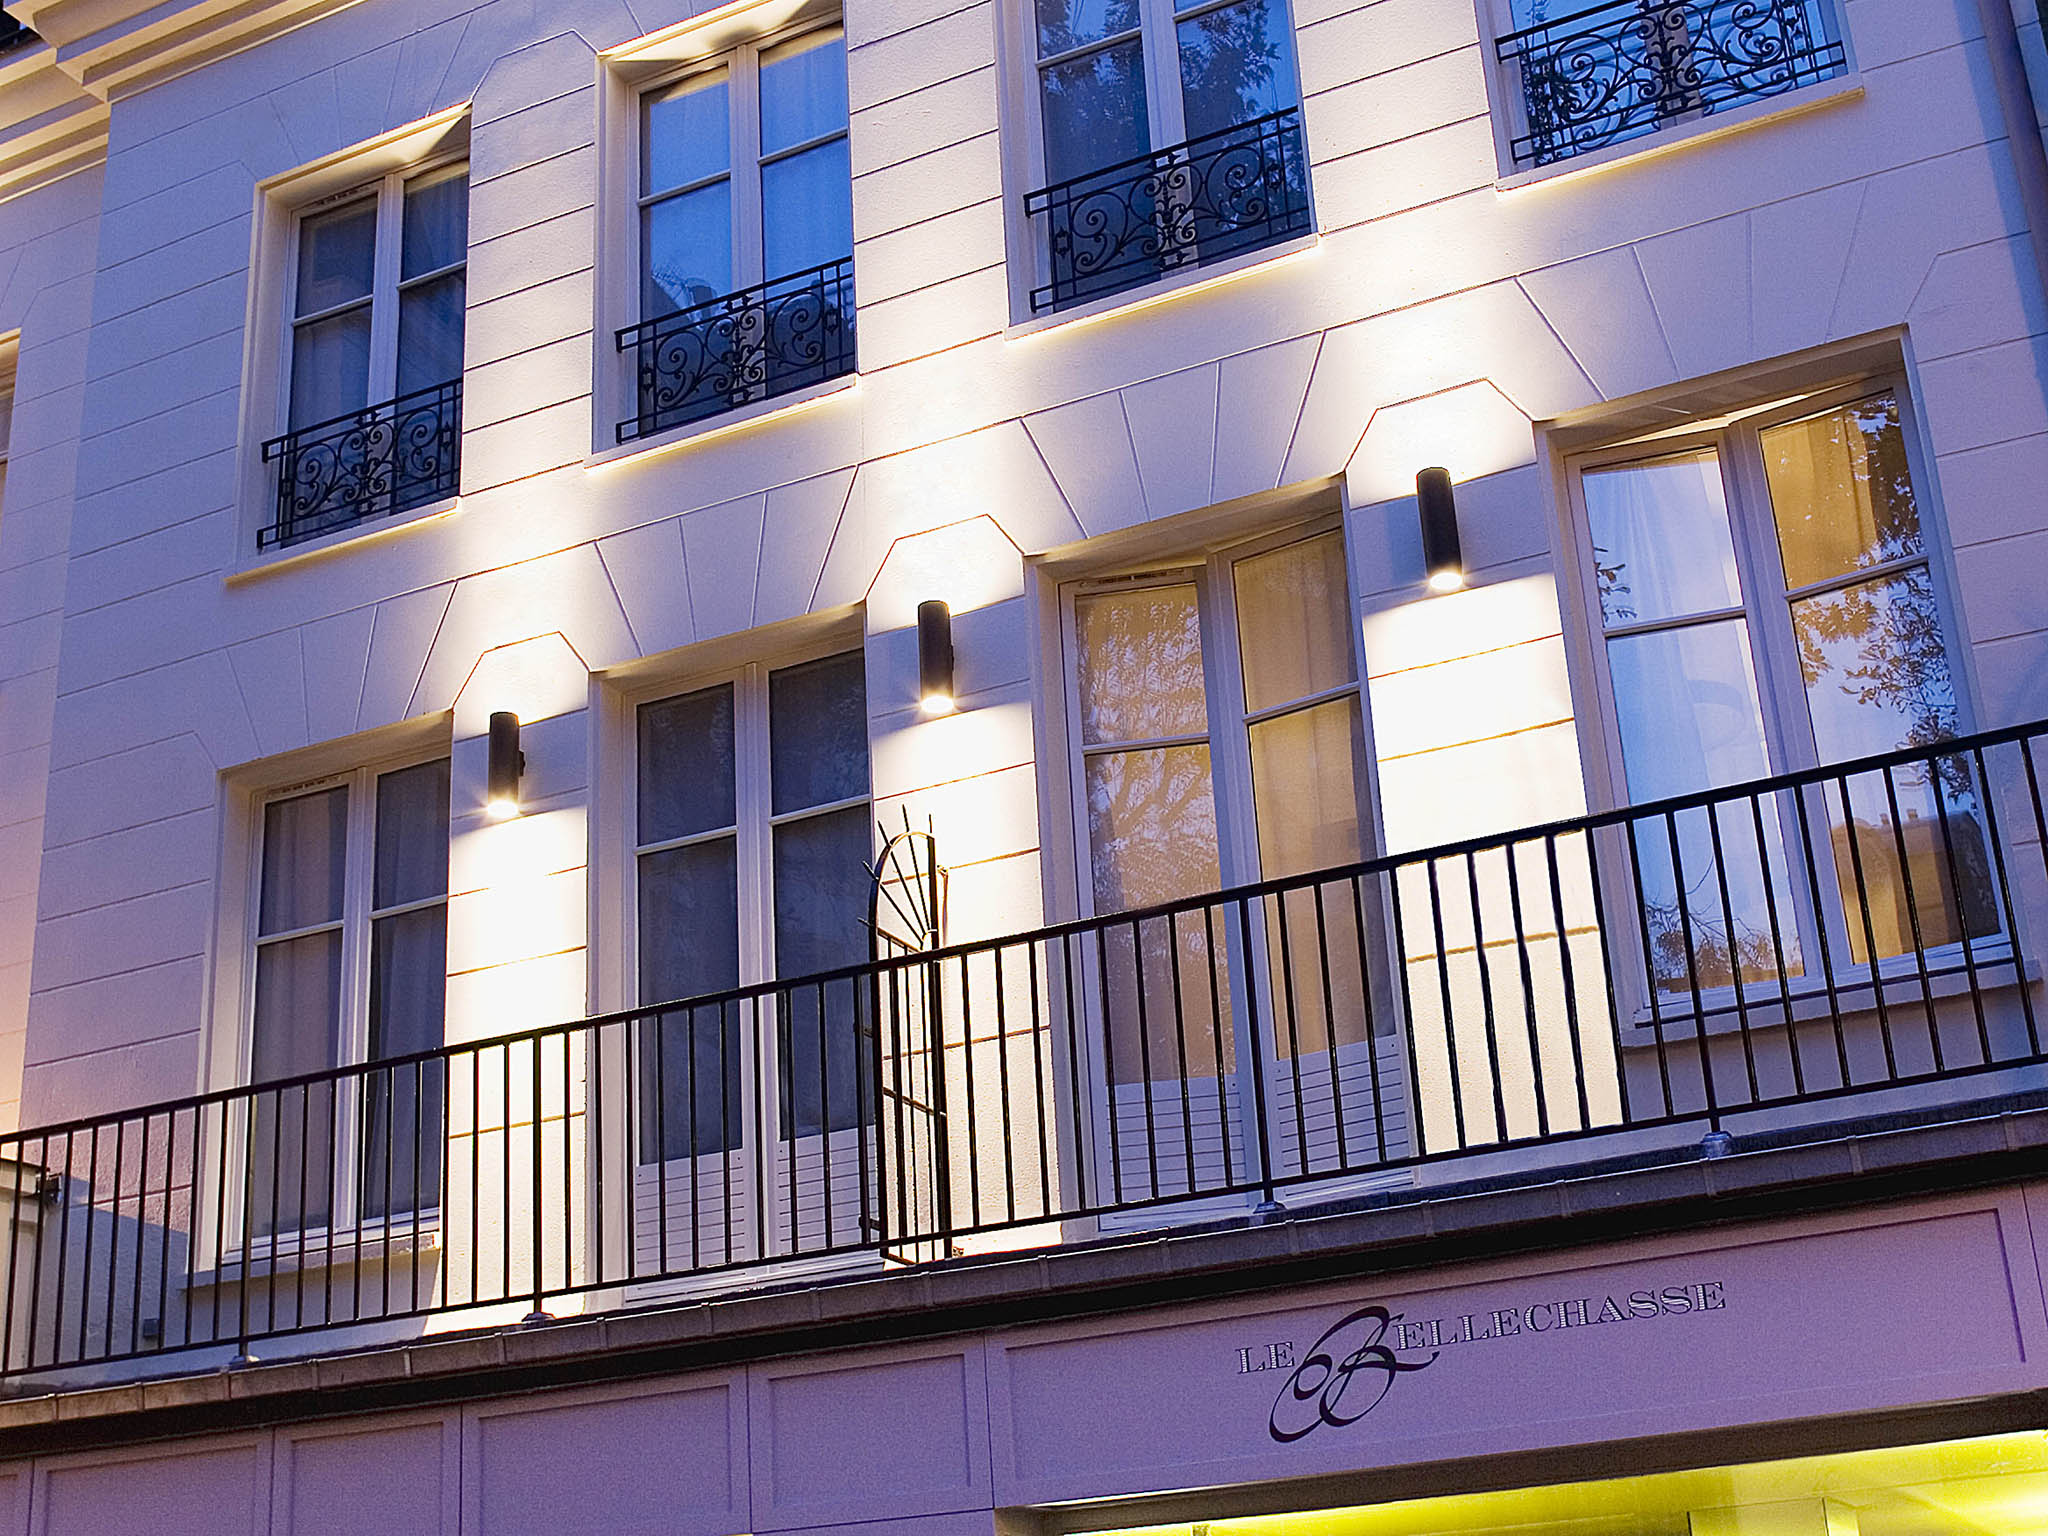 Hotel in paris le bellechasse saint germain for Hotel saint germain